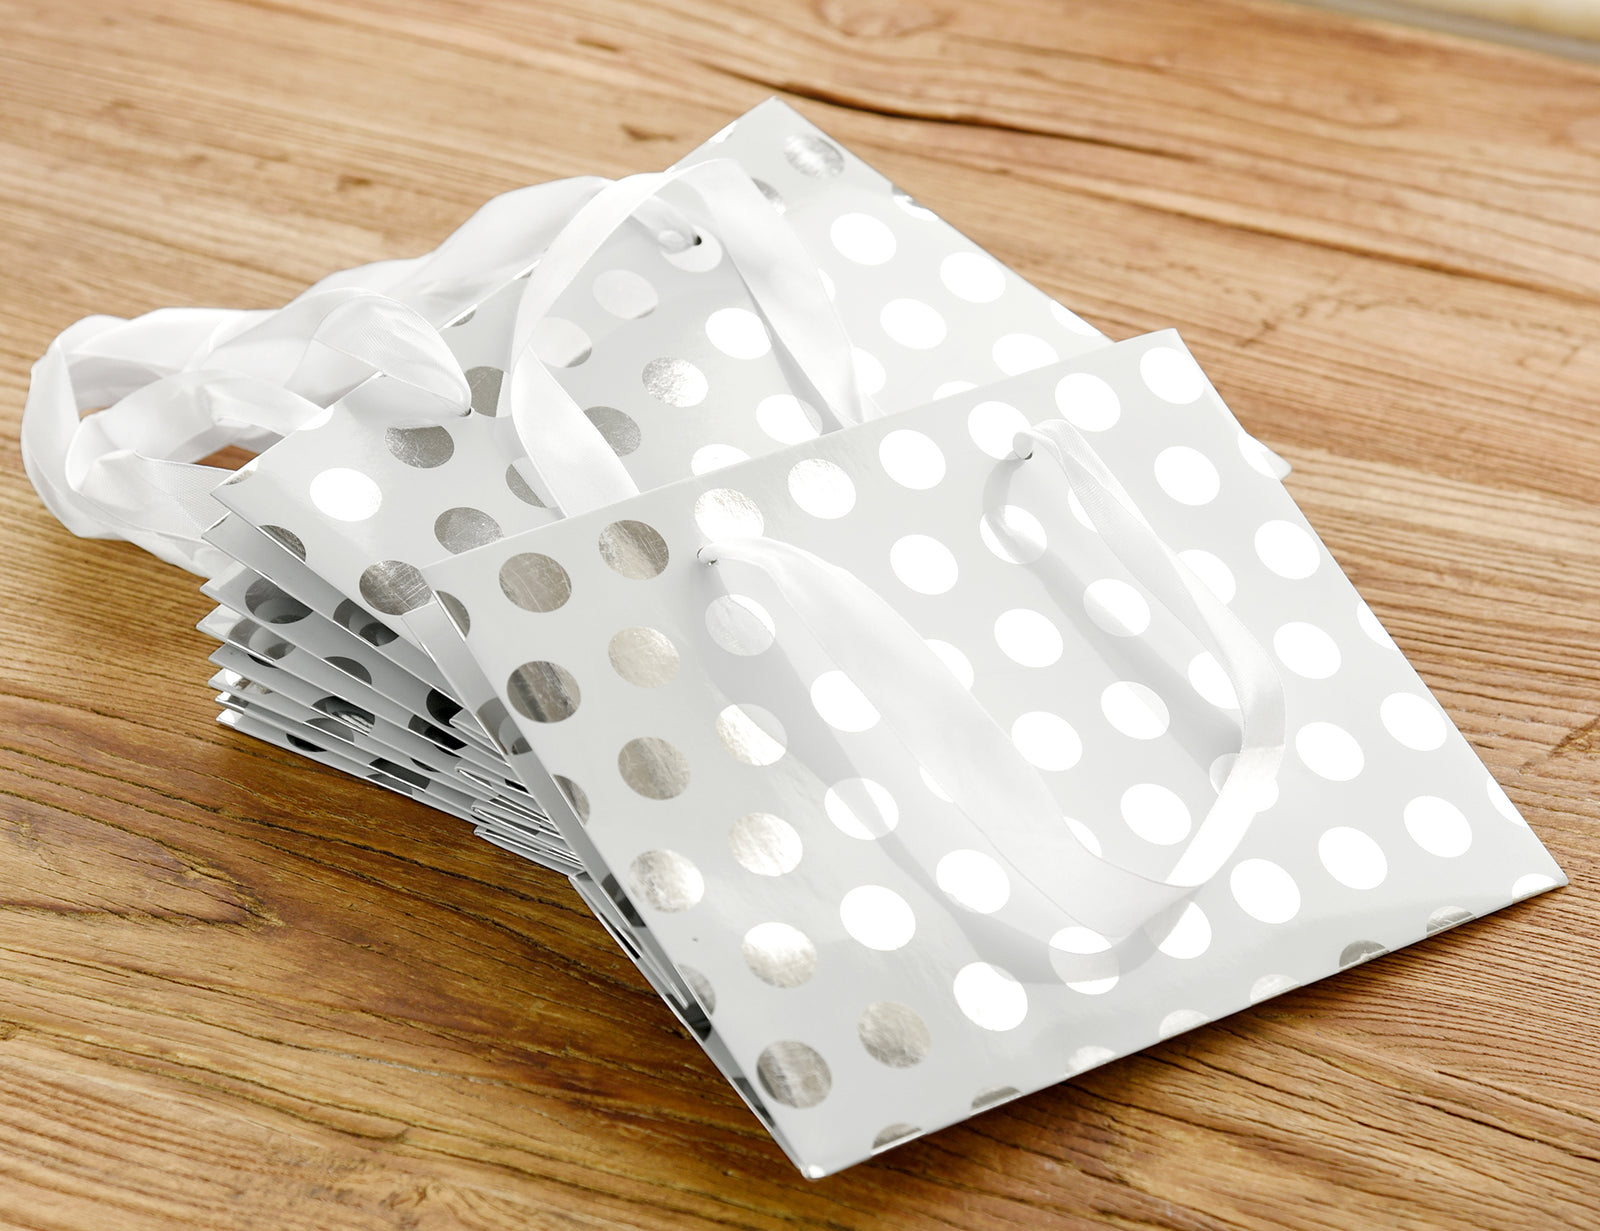 5 Silver Polka Dots Paper Bags with Handles (Small)